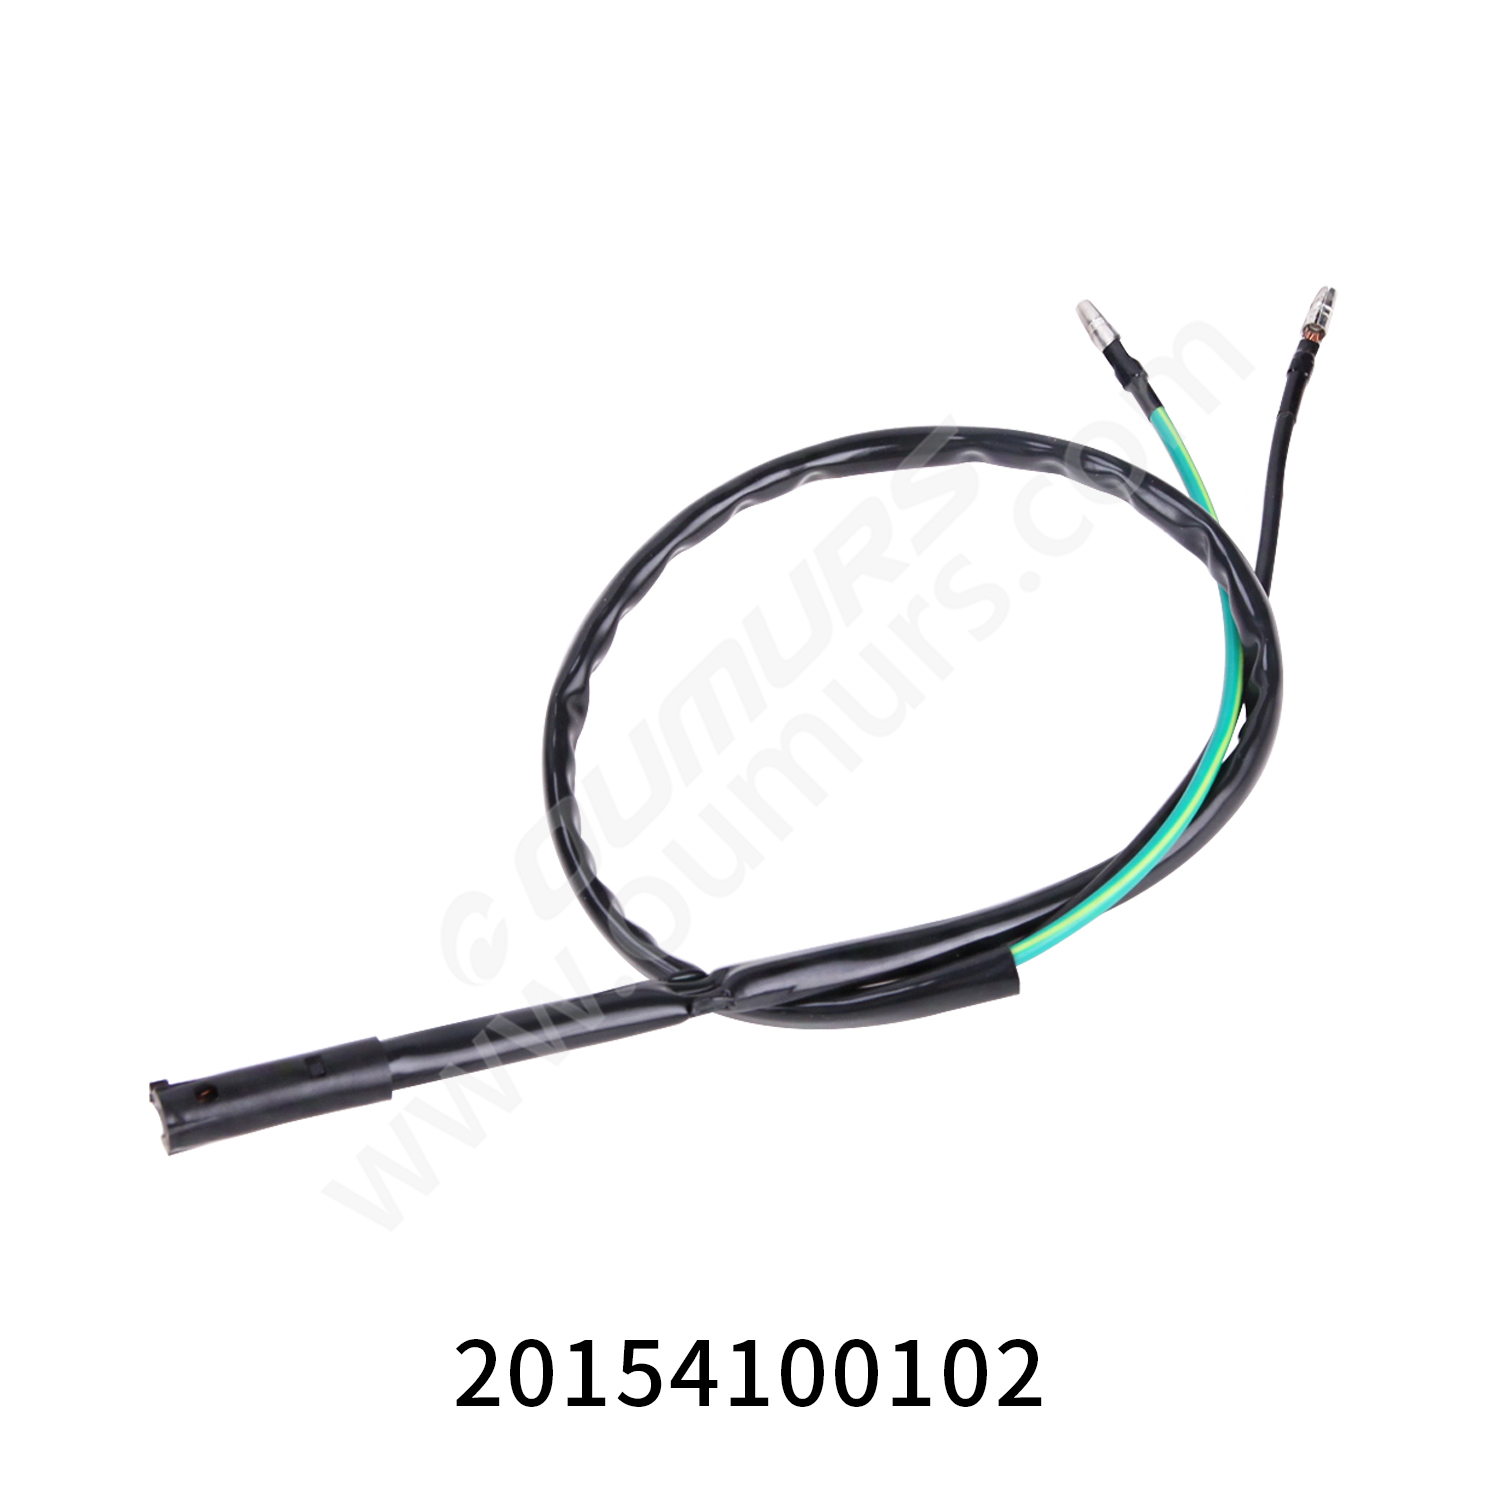 FRONT BRAKE SWITCH-GENERAL